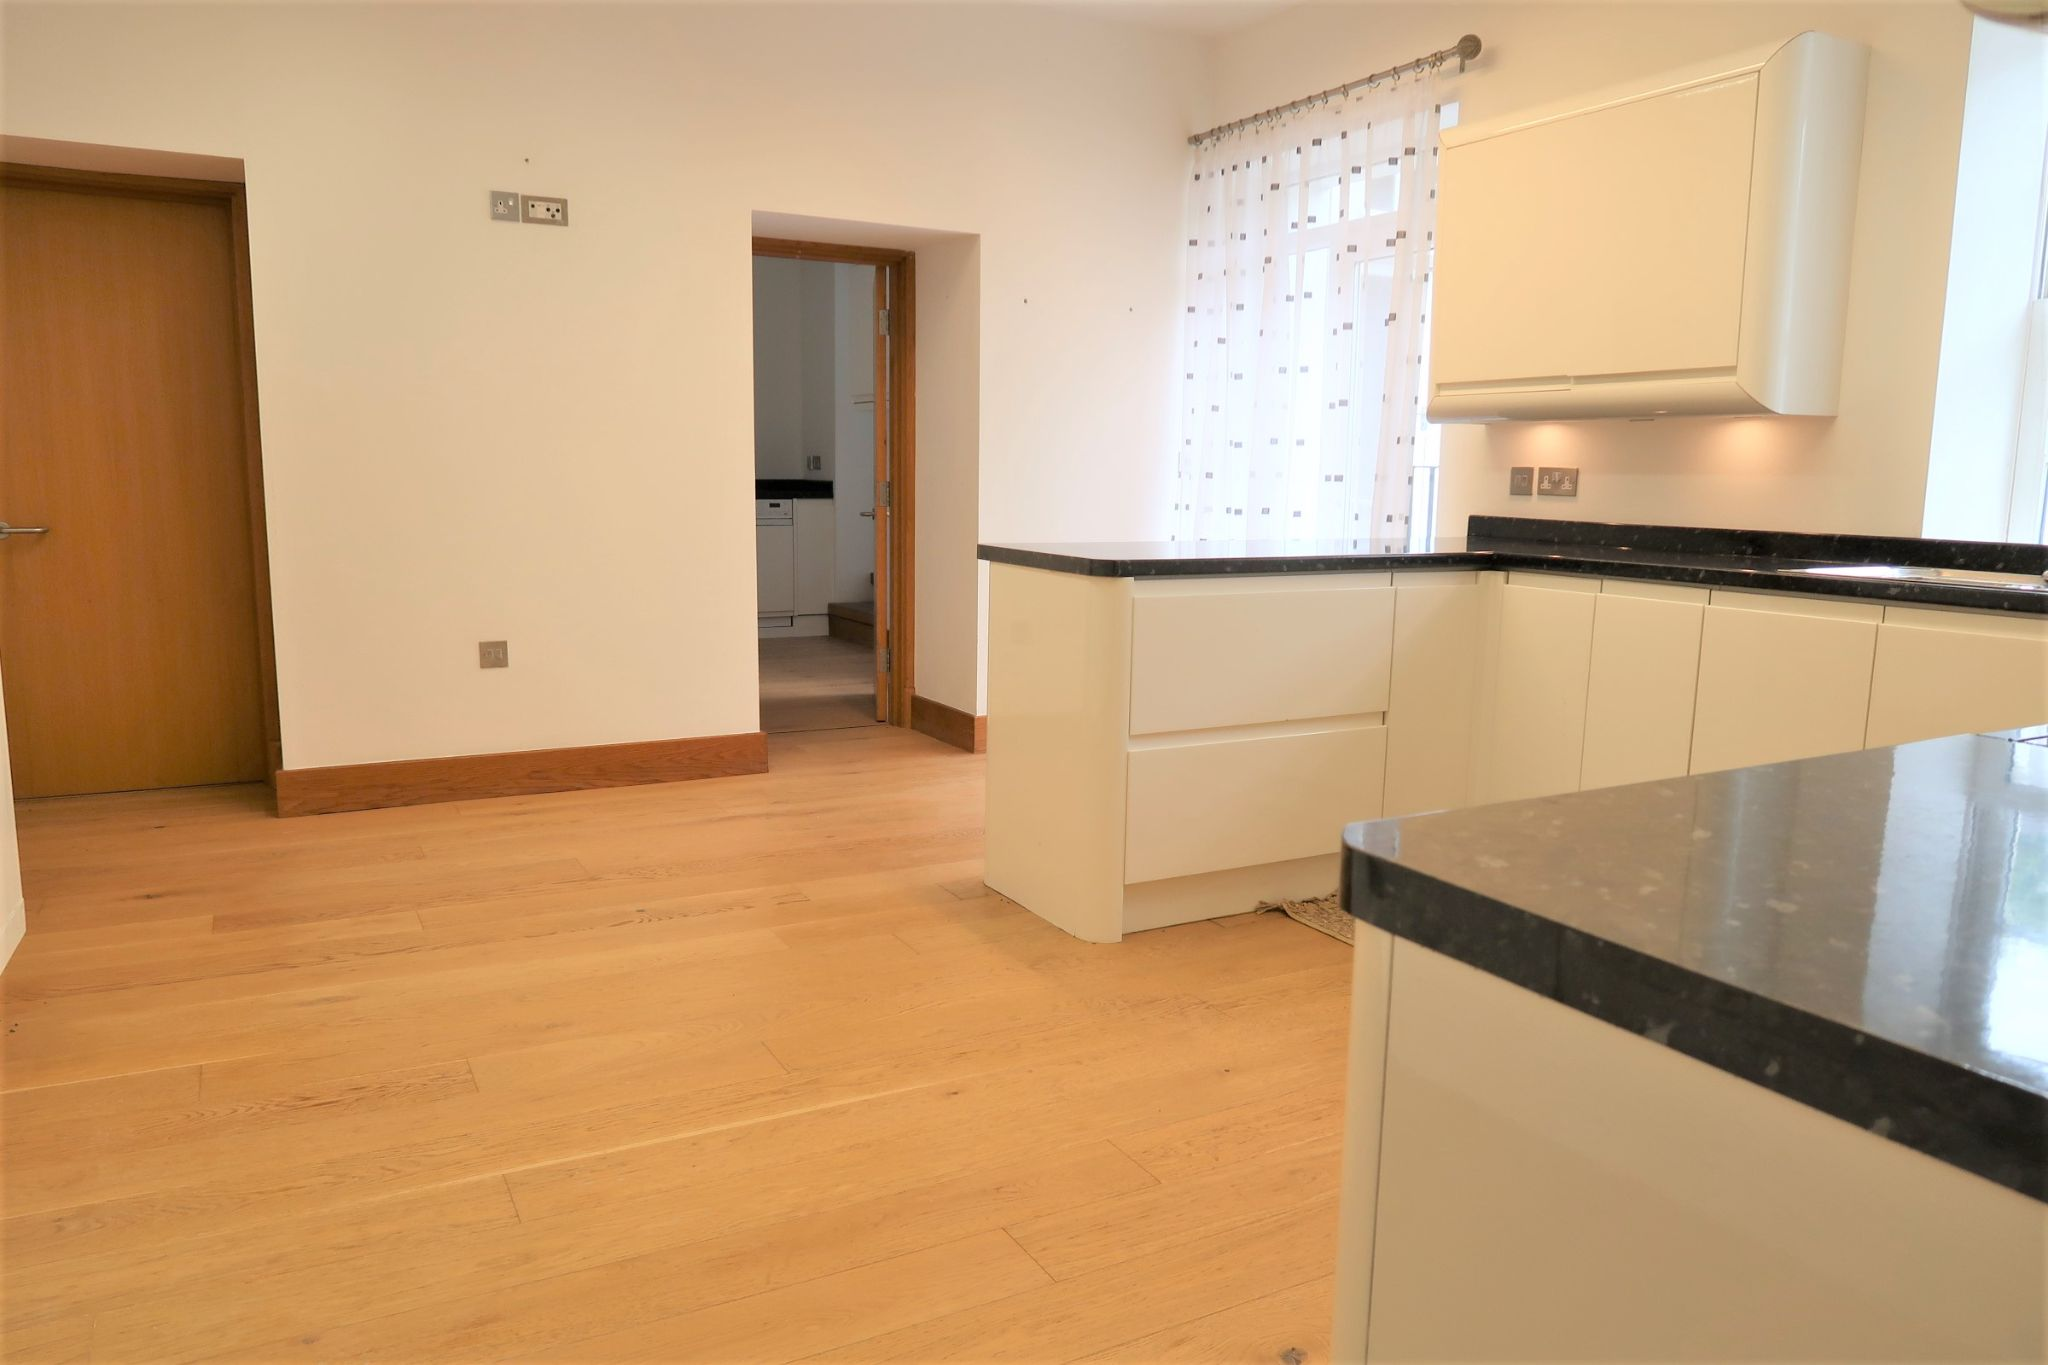 7 bedroom detached house SSTC in Castletown - Property photograph